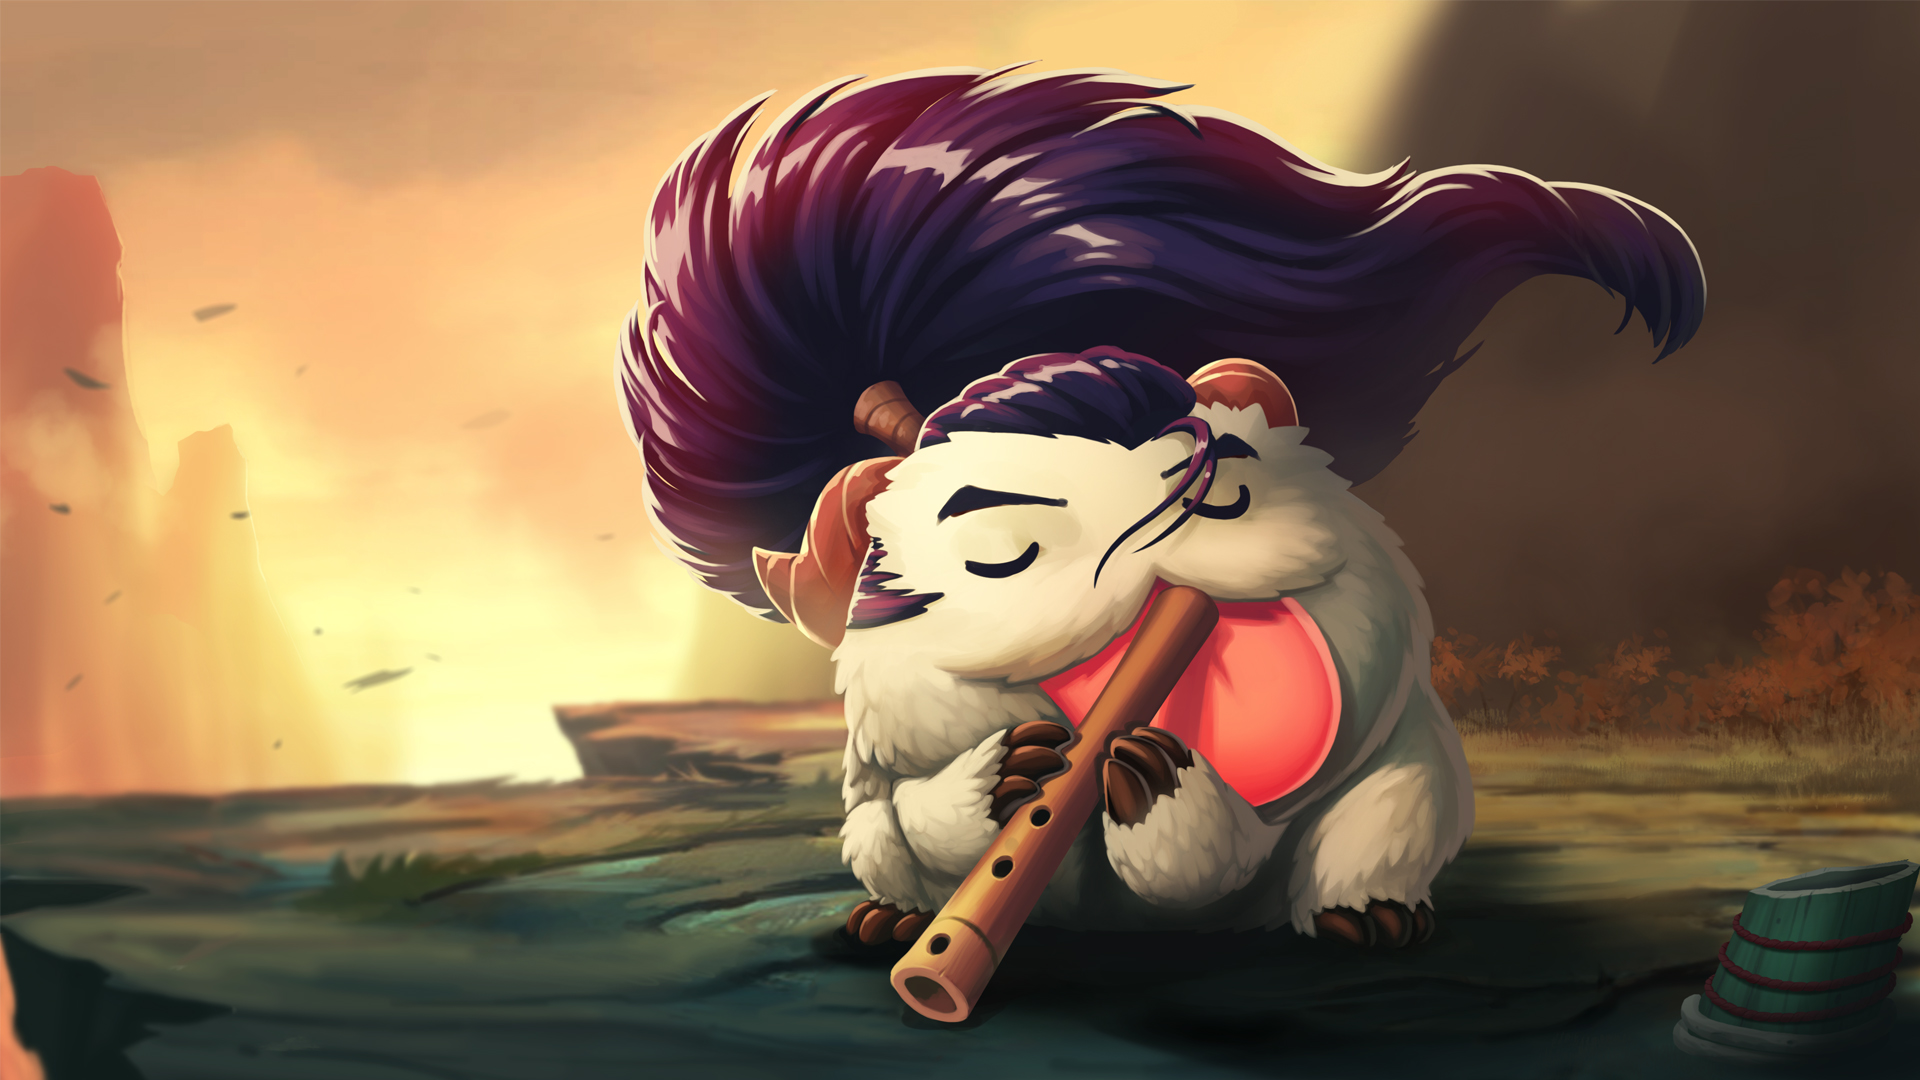 Poro Yasuo - League of Legends Photo (38308593) - Fanpop